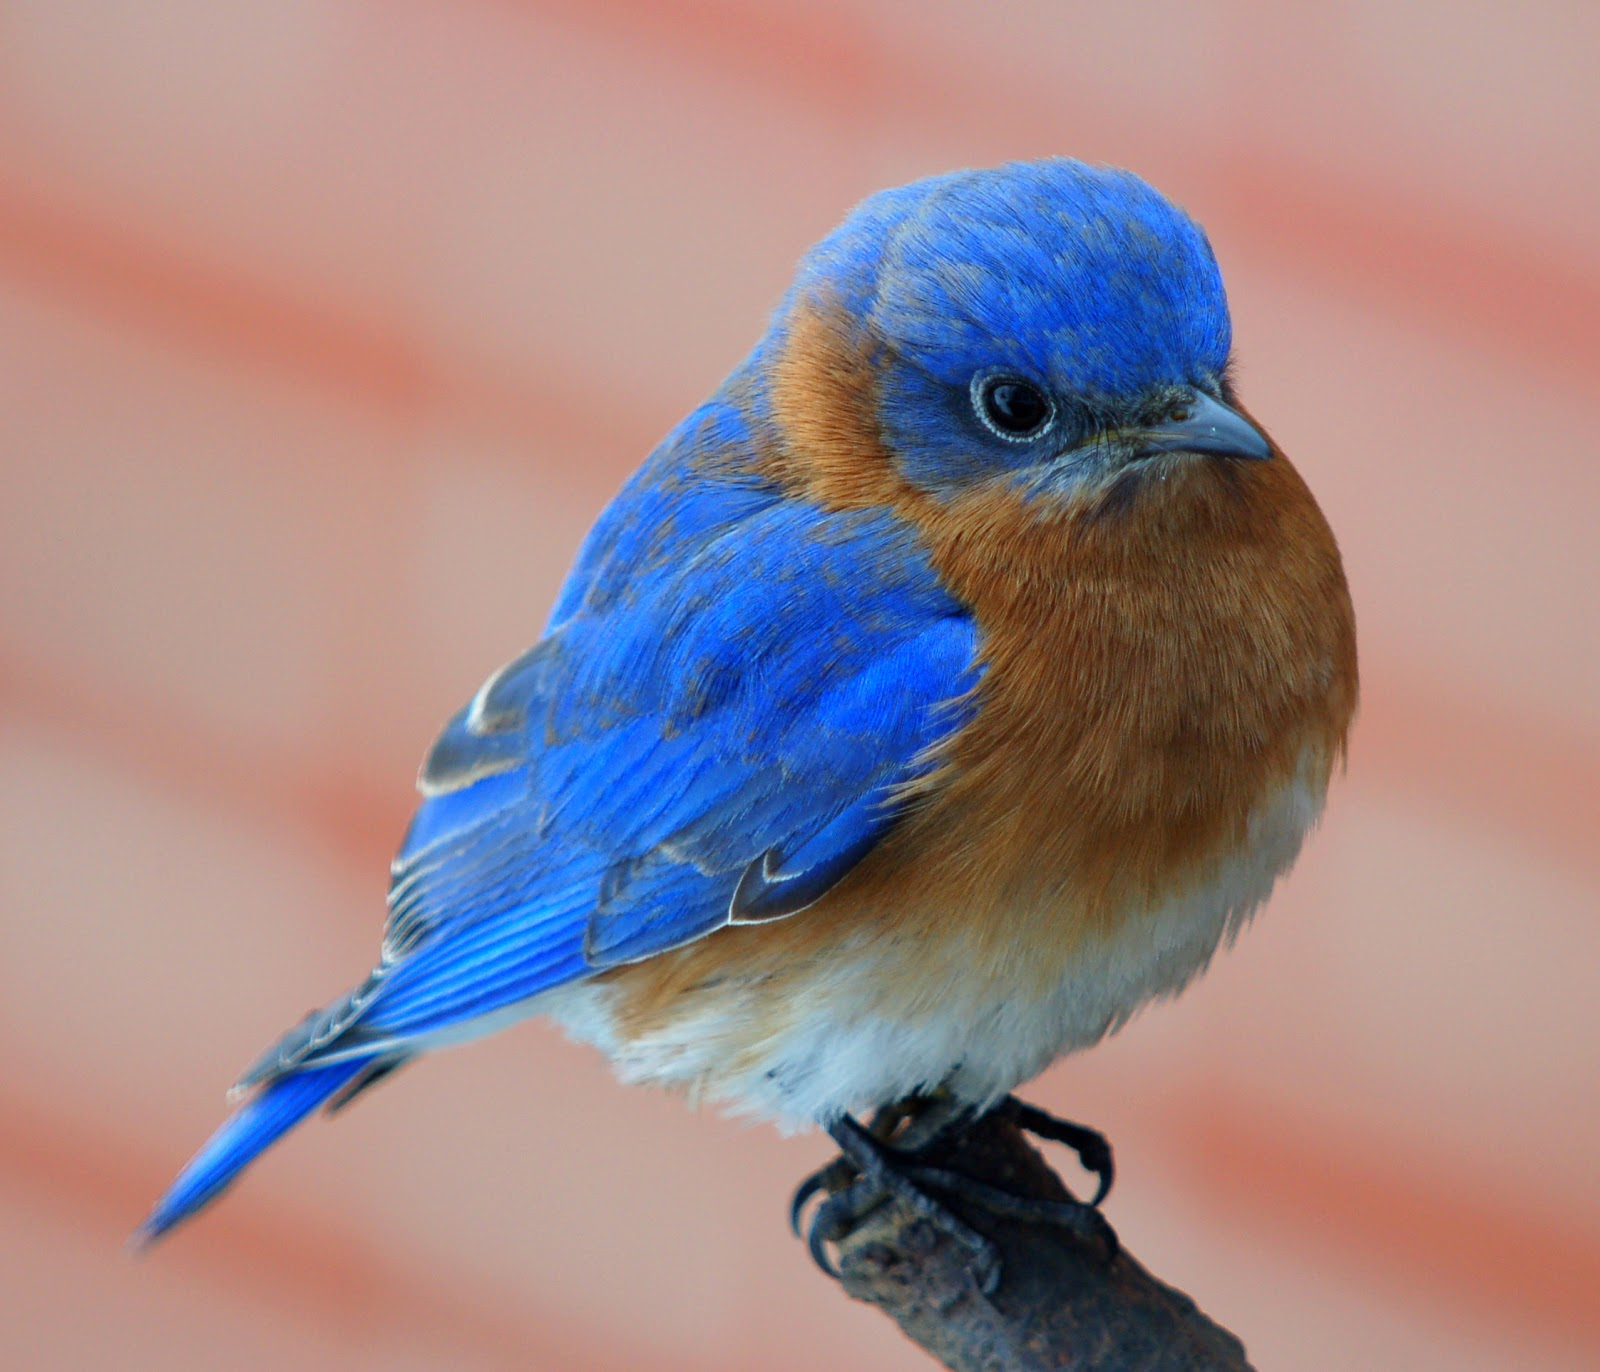 Blue bird - photo#44